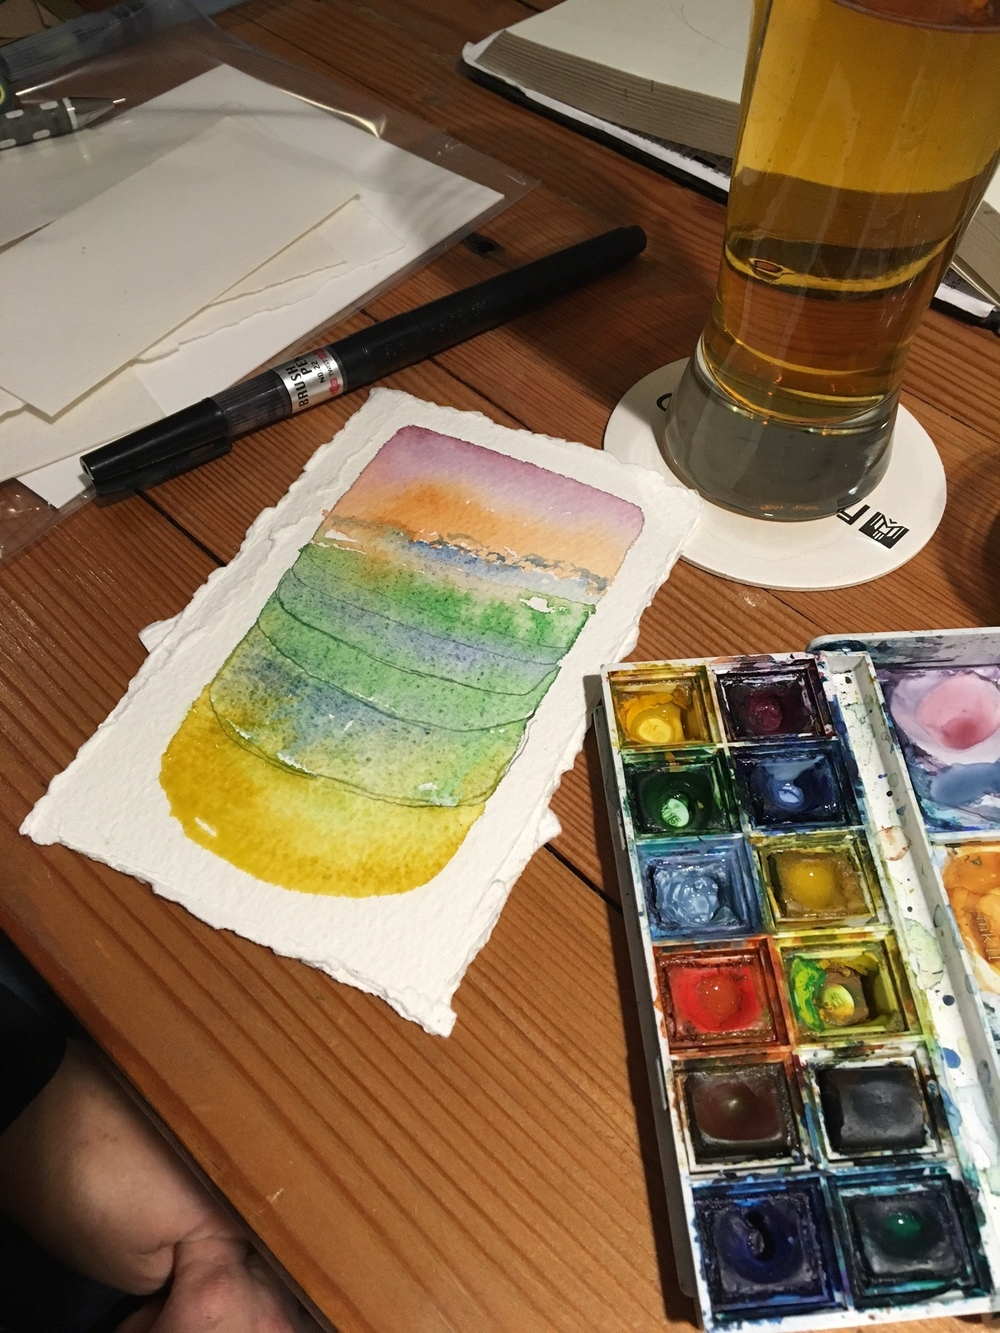 Elissa working her watercolor magic